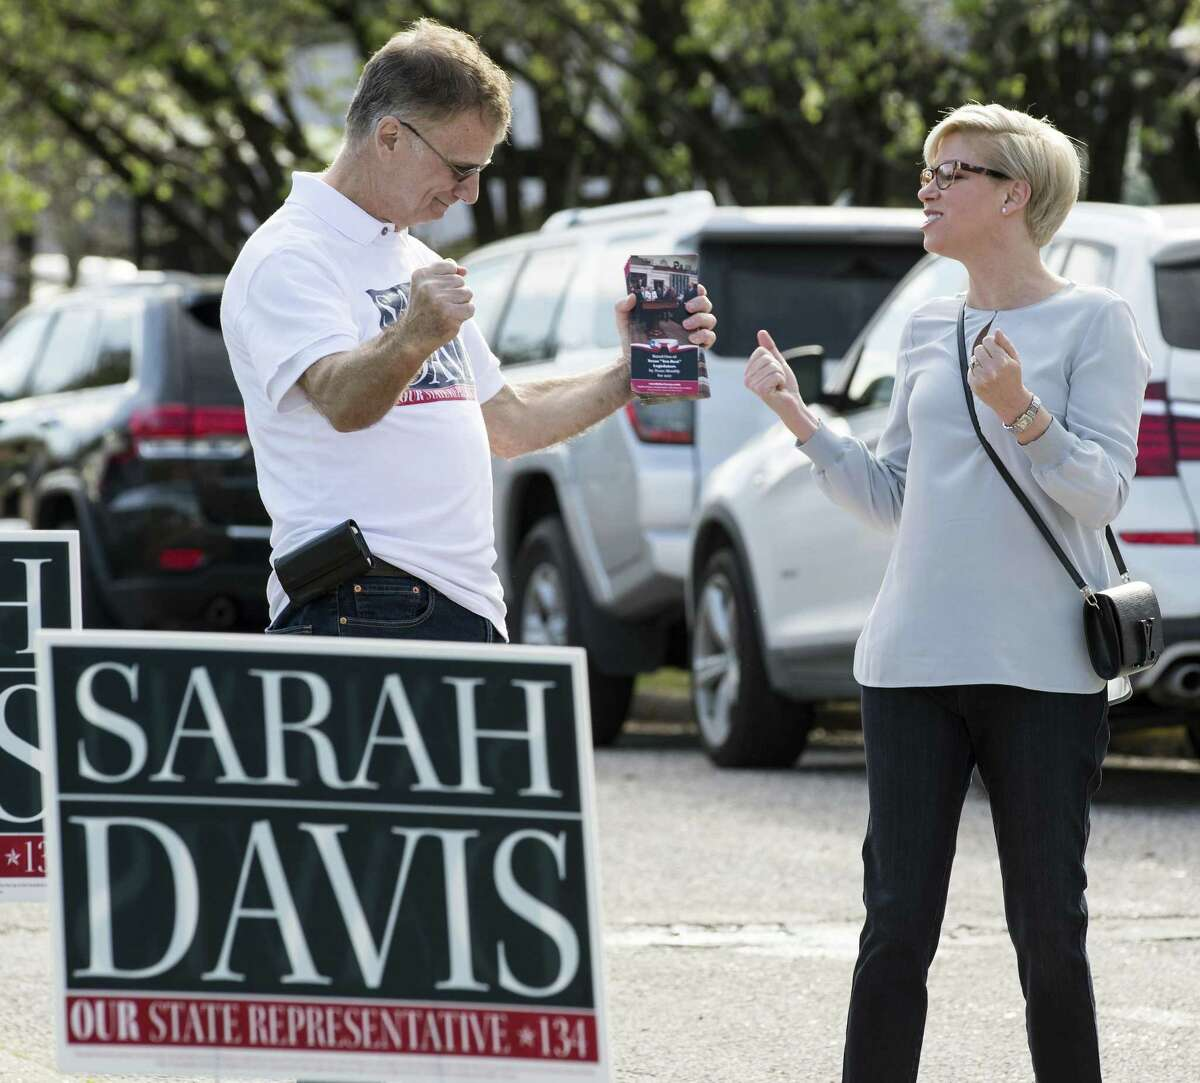 State Rep. Sarah Davis, R-Houston, speaks to campaign volunteer Michael Sternesky, left, before voting Tuesday in in Houston. Davis won despite support for her opponent from Governor Greg Abbott.